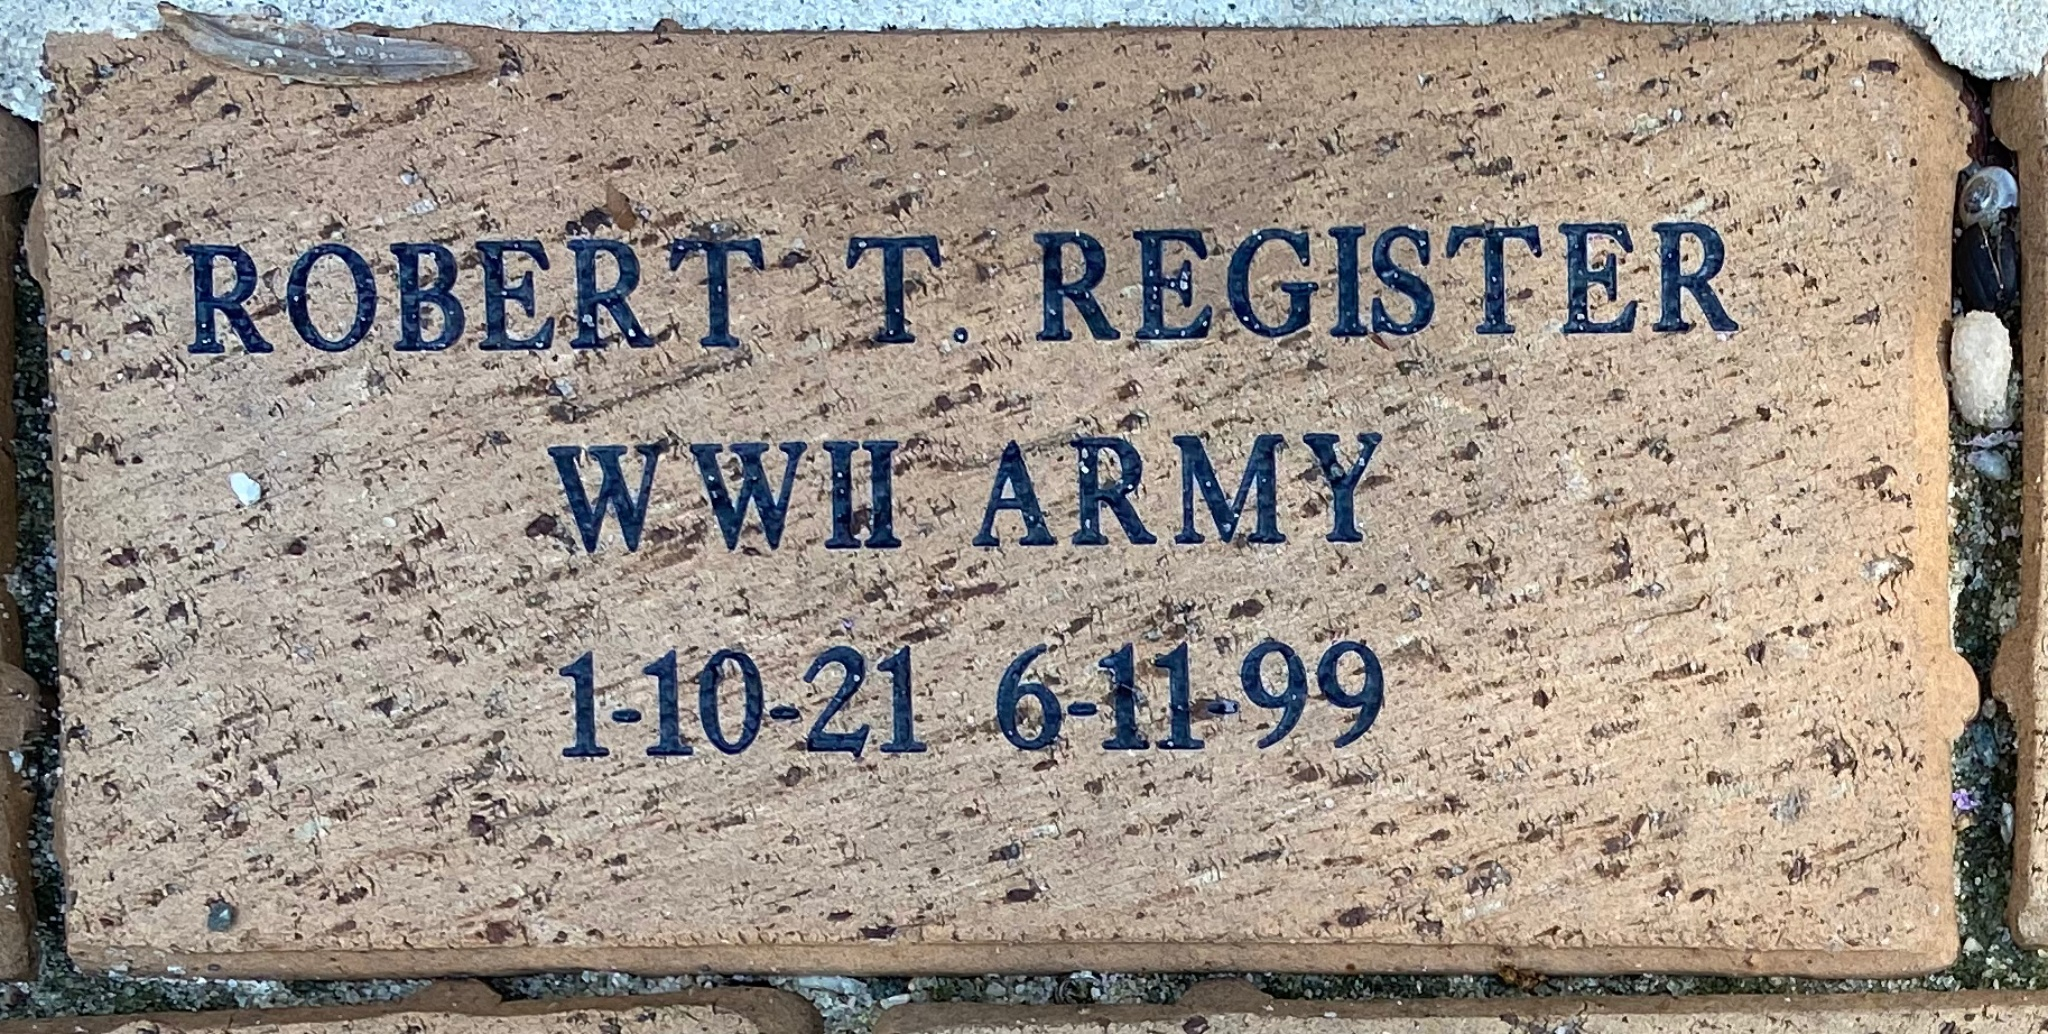 ROBERT T. REGISTER WWII ARMY 1-10-21 6-11-99